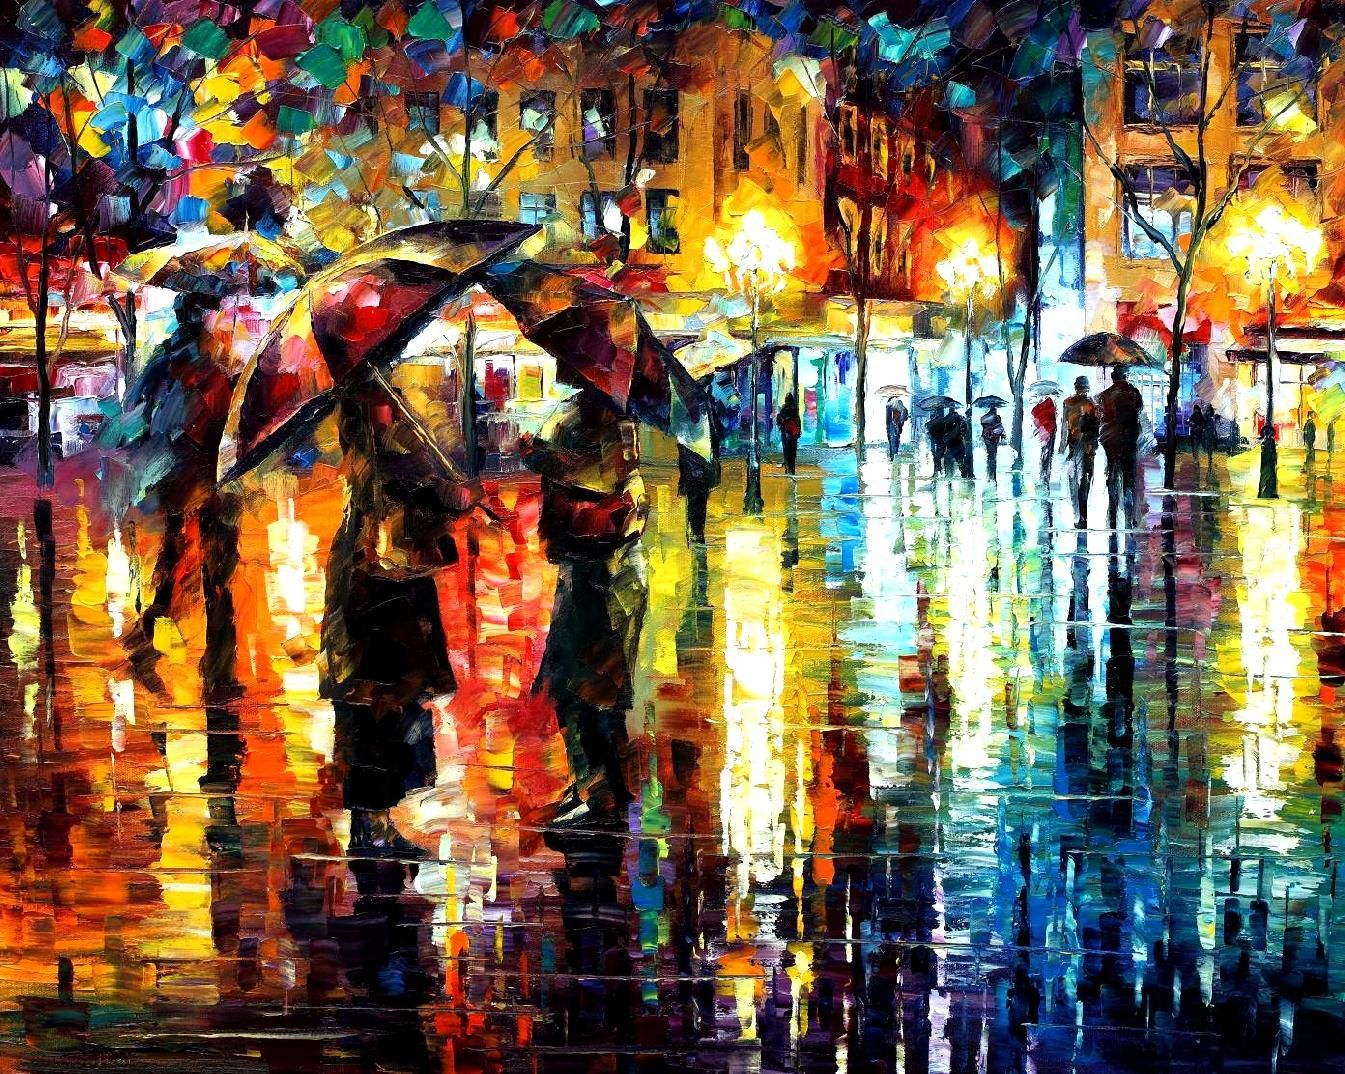 CLOSE ENCOUNTER - PALETTE KNIFE Oil Painting On Canvas By Leonid Afremov - http://afremov.com/CLOSE-ENCOUNTER-PALETTE-KNIFE-Oil-Painting-On-Canvas-By-Leonid-Afremov-Size-24-x30.html?utm_source=s-pinterest&utm_medium=/afremov_usa&utm_campaign=ADD-YOUR